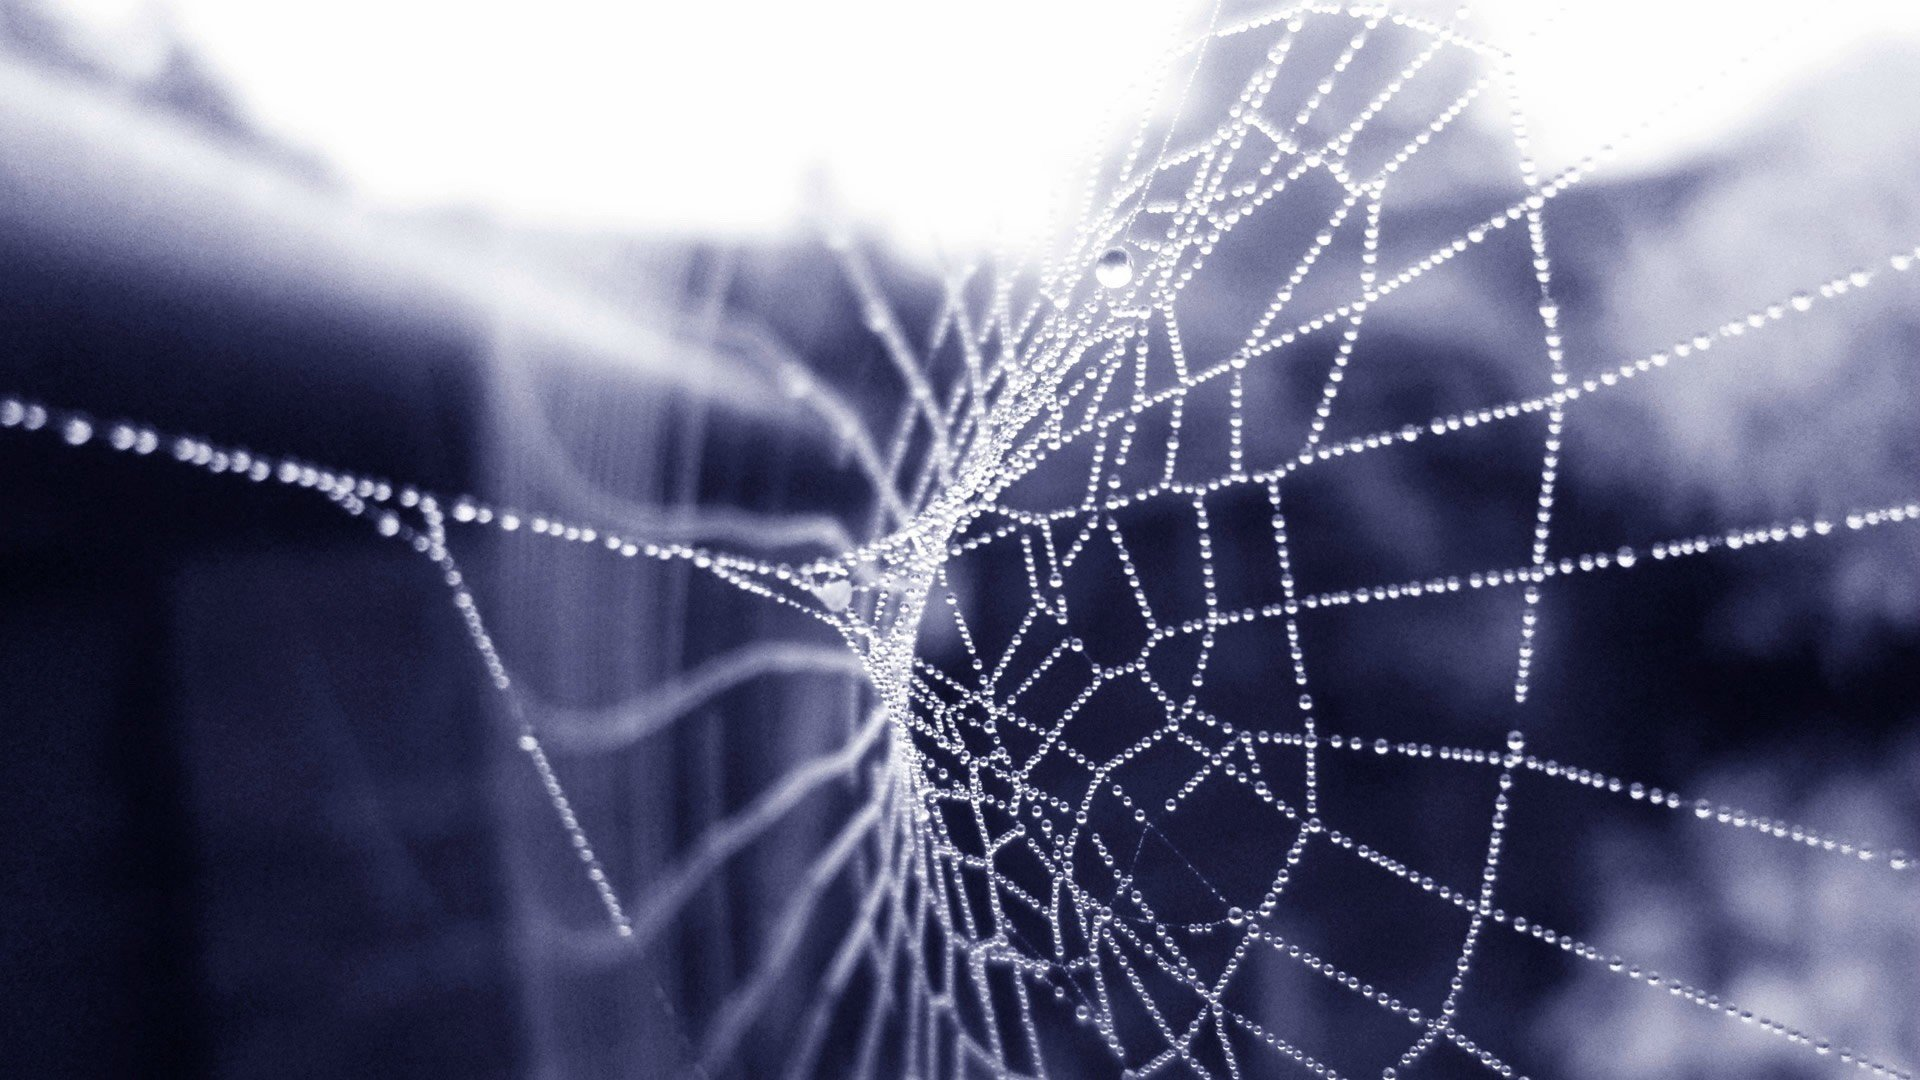 Awesome Spider Web free wallpaper ID:184810 for hd 1920x1080 desktop